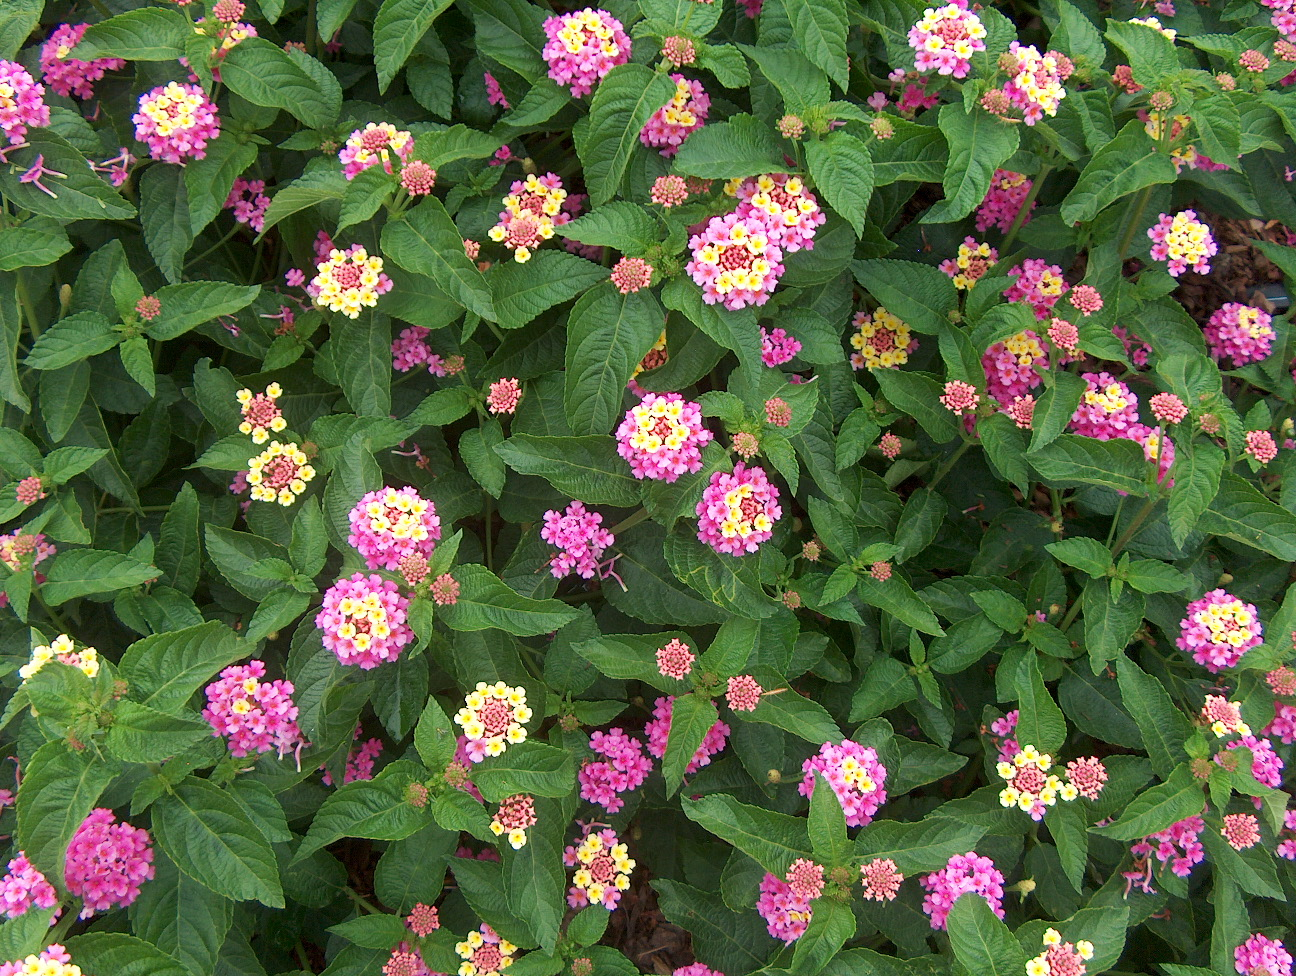 Lantana camara 'Landmark Rose Glow Improved' / Lantana camara 'Landmark Rose Glow Improved'